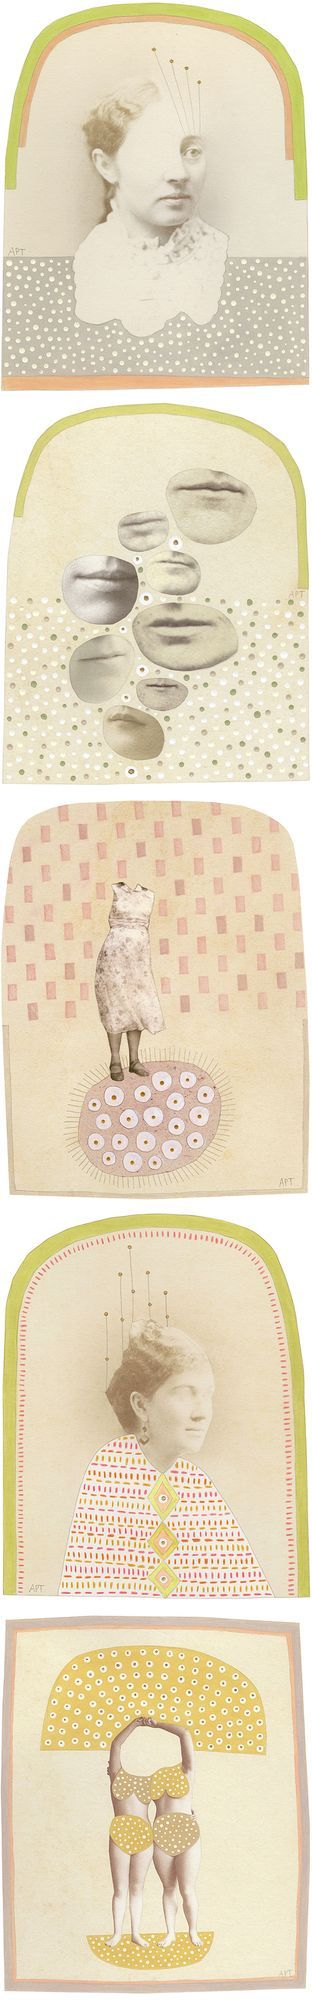 Whimsical collages that make me want to play in the studio… in a polka-dot bikini? No no, it's too cold for that, but I still want to cut 'n paste all day long! This is the mixed media work of Vermont